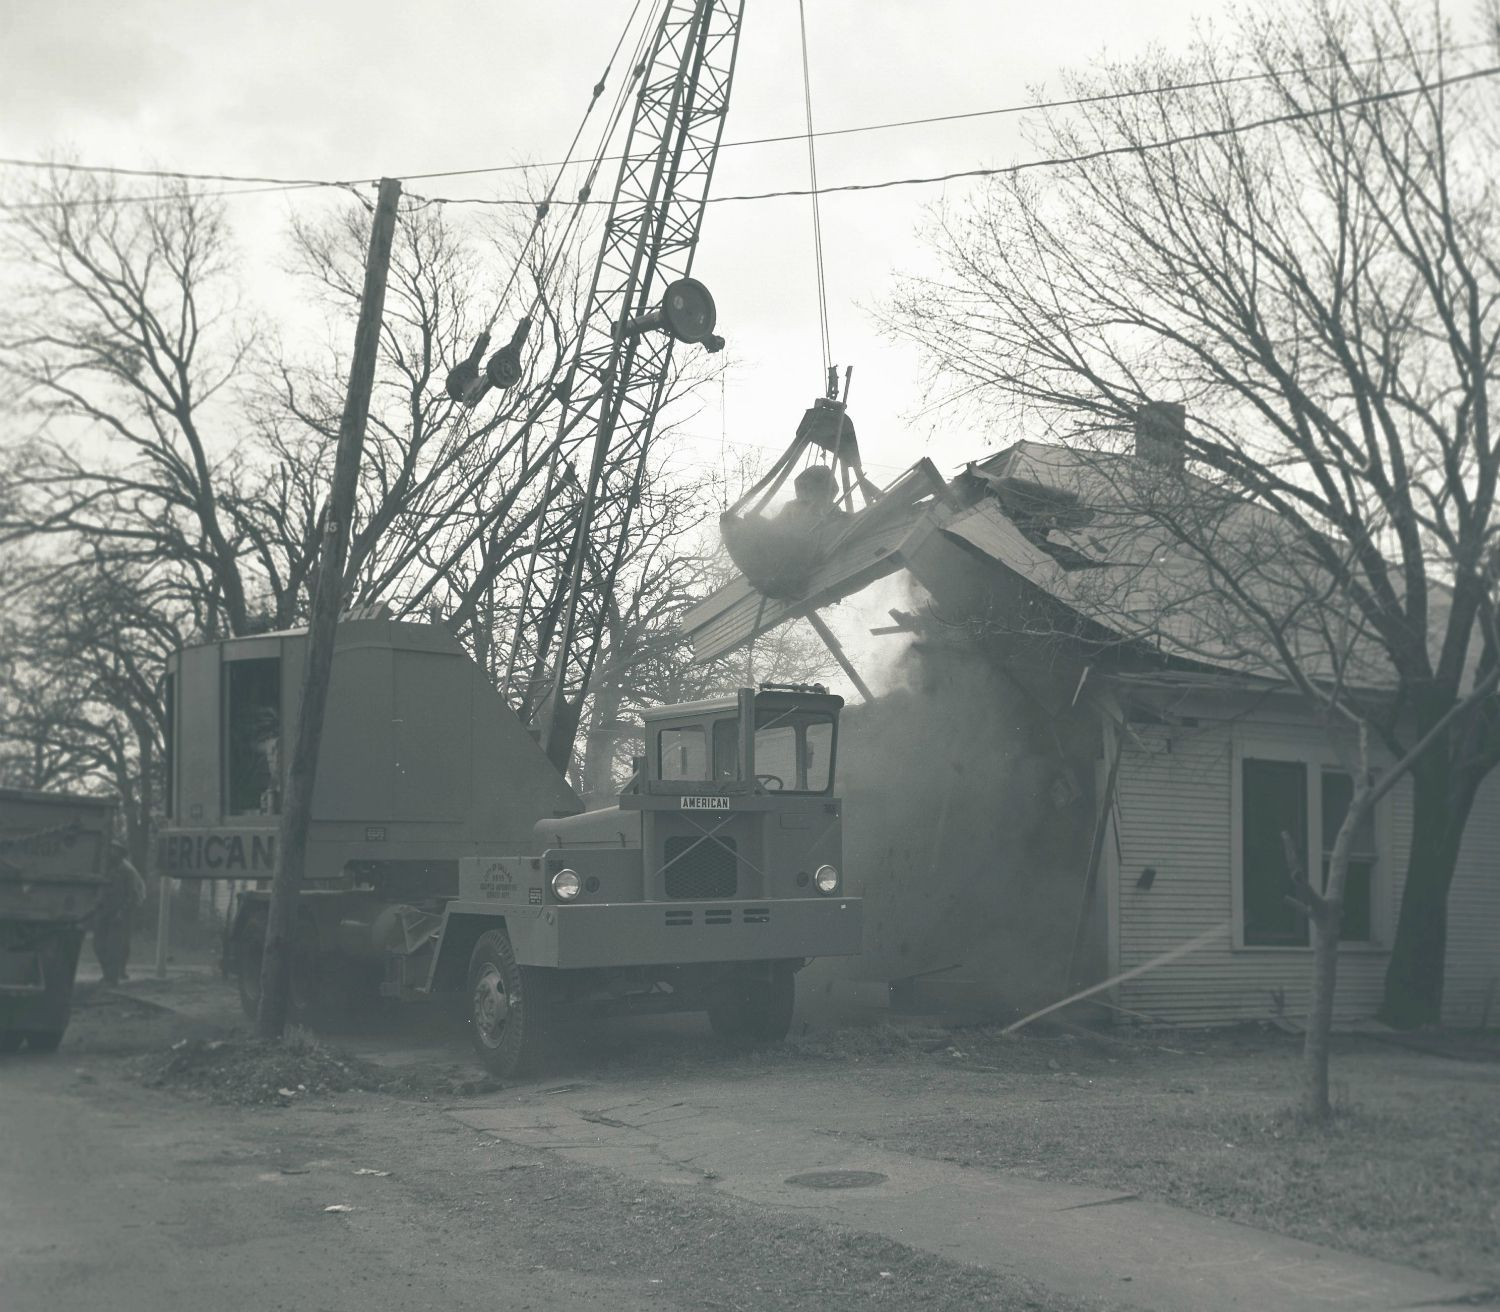 A wrecking crew goes to work demolishing a Fair Park house in the 1960s, to make way for a parking lot now locked off from the adjacent neighborhoods.